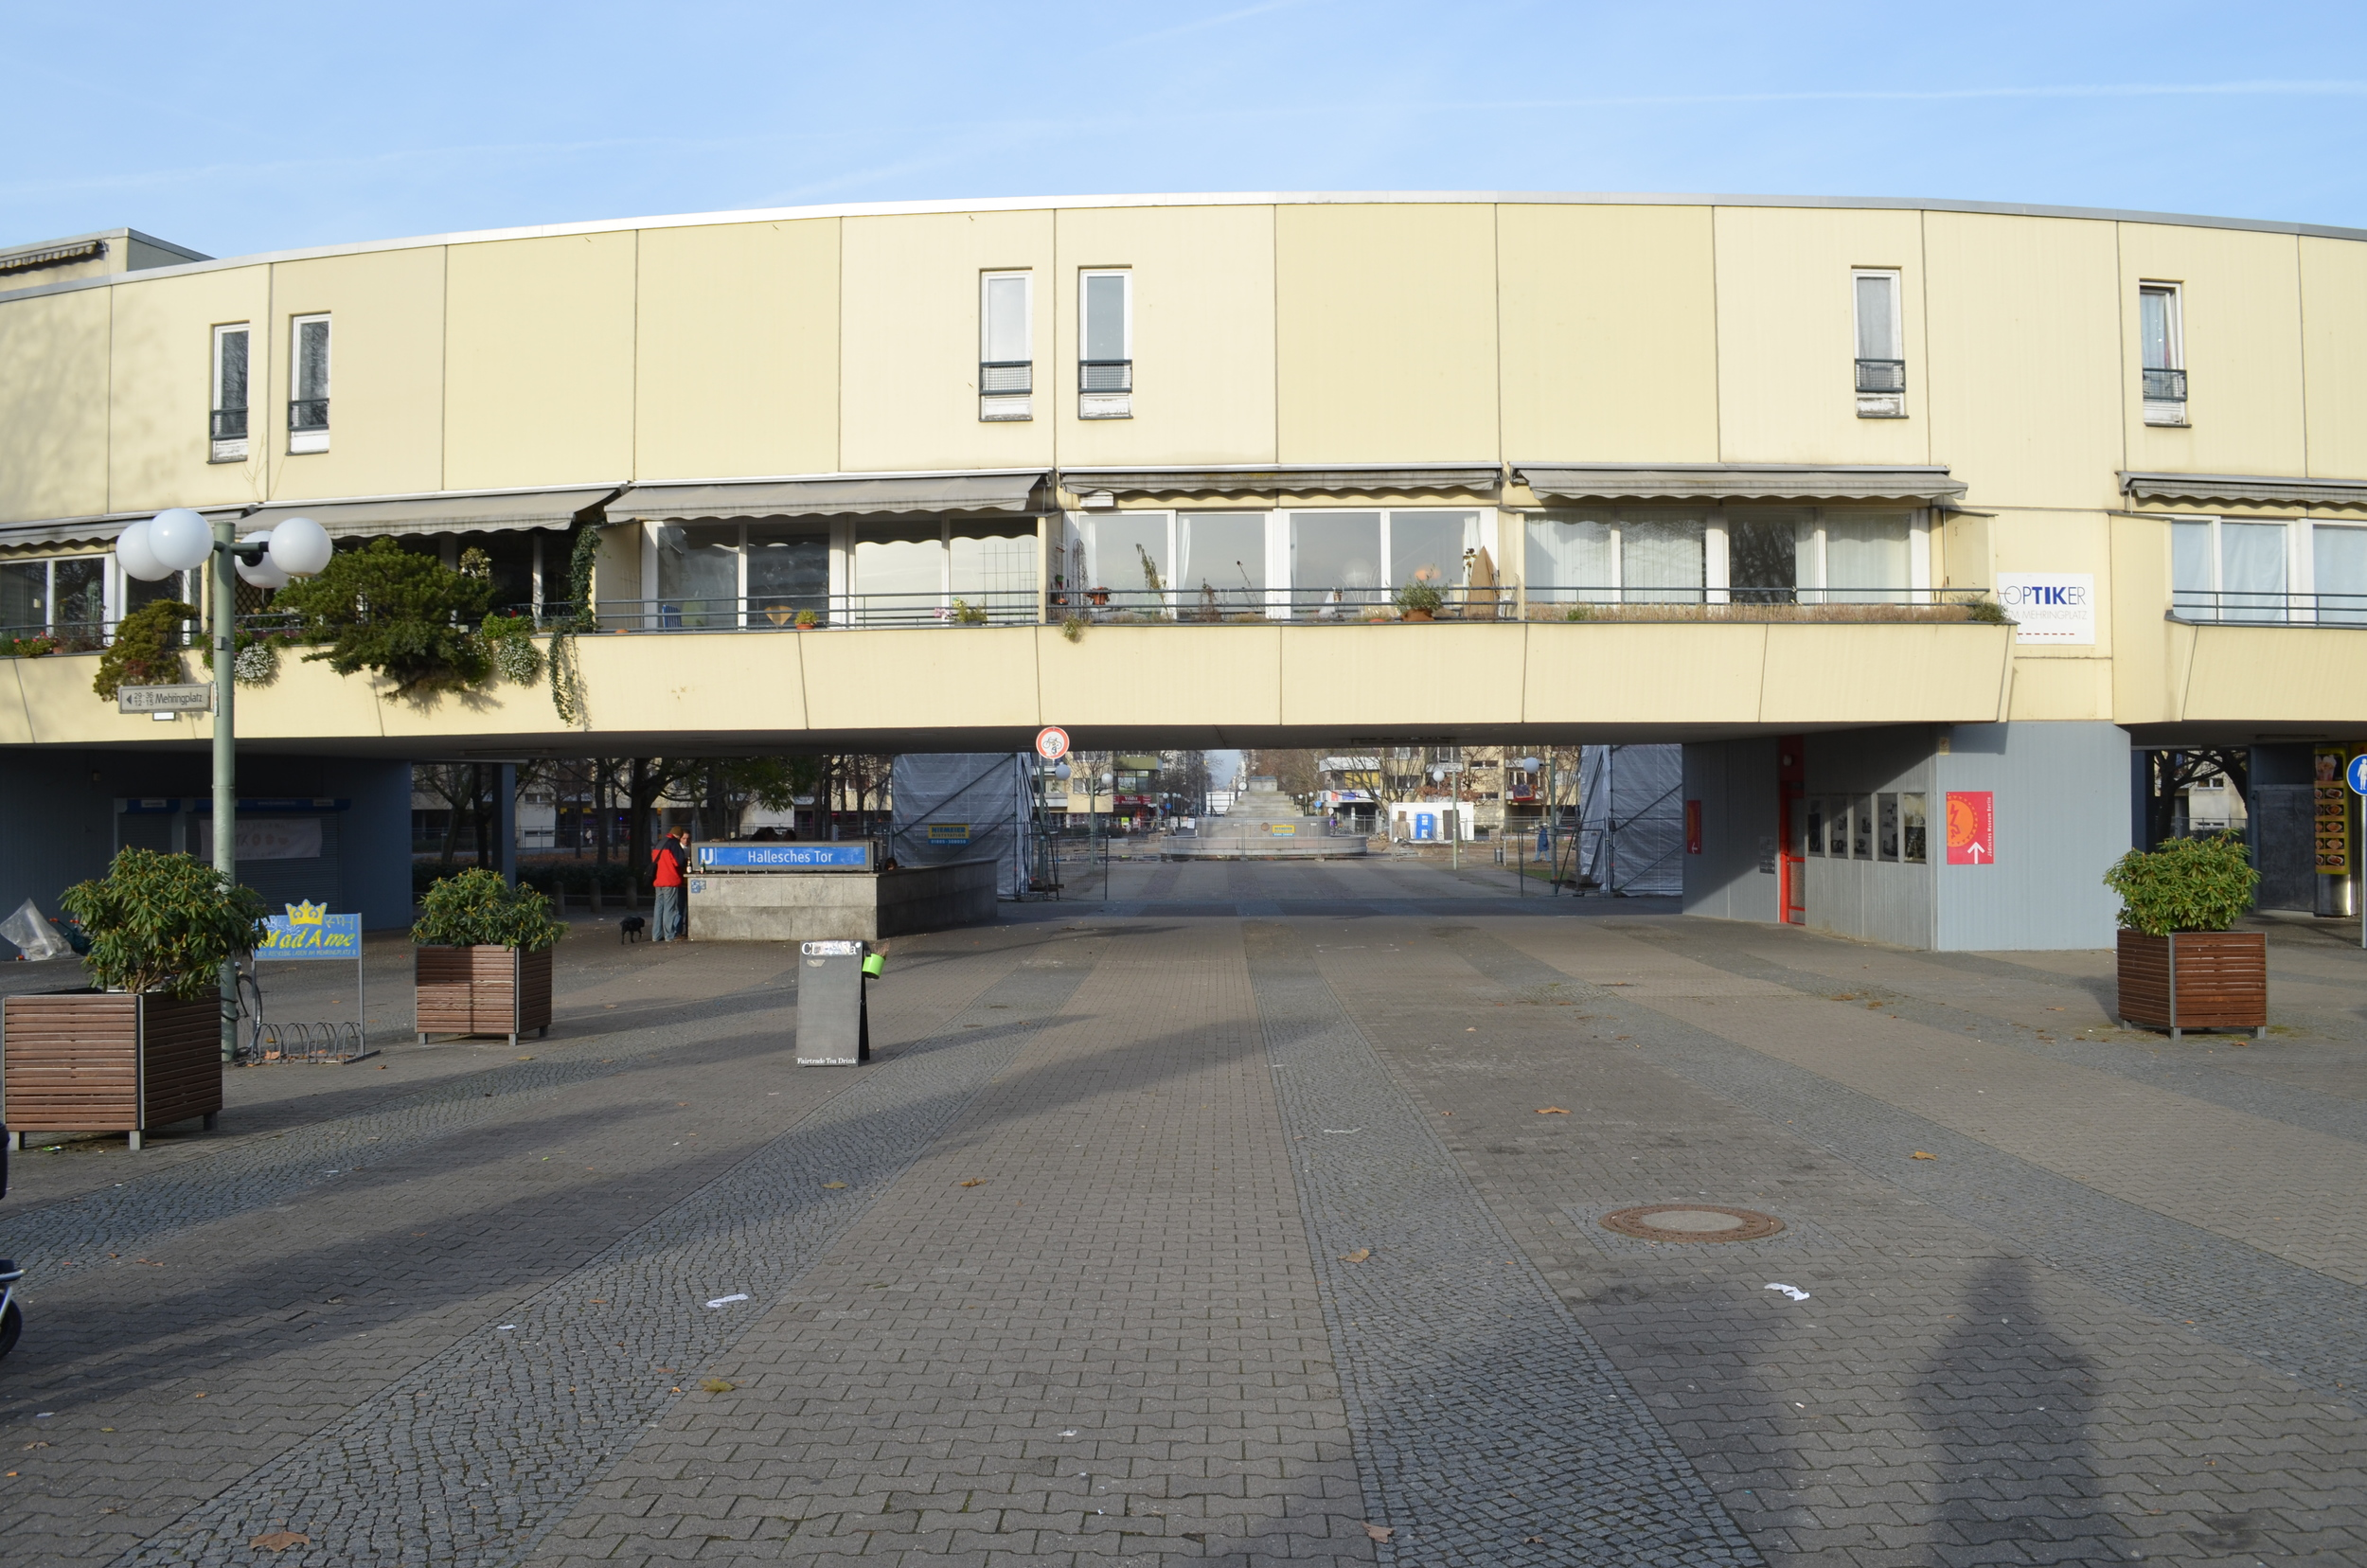 A circular residential building. The complex consists of an inner circular building and then a series of outer buildings.